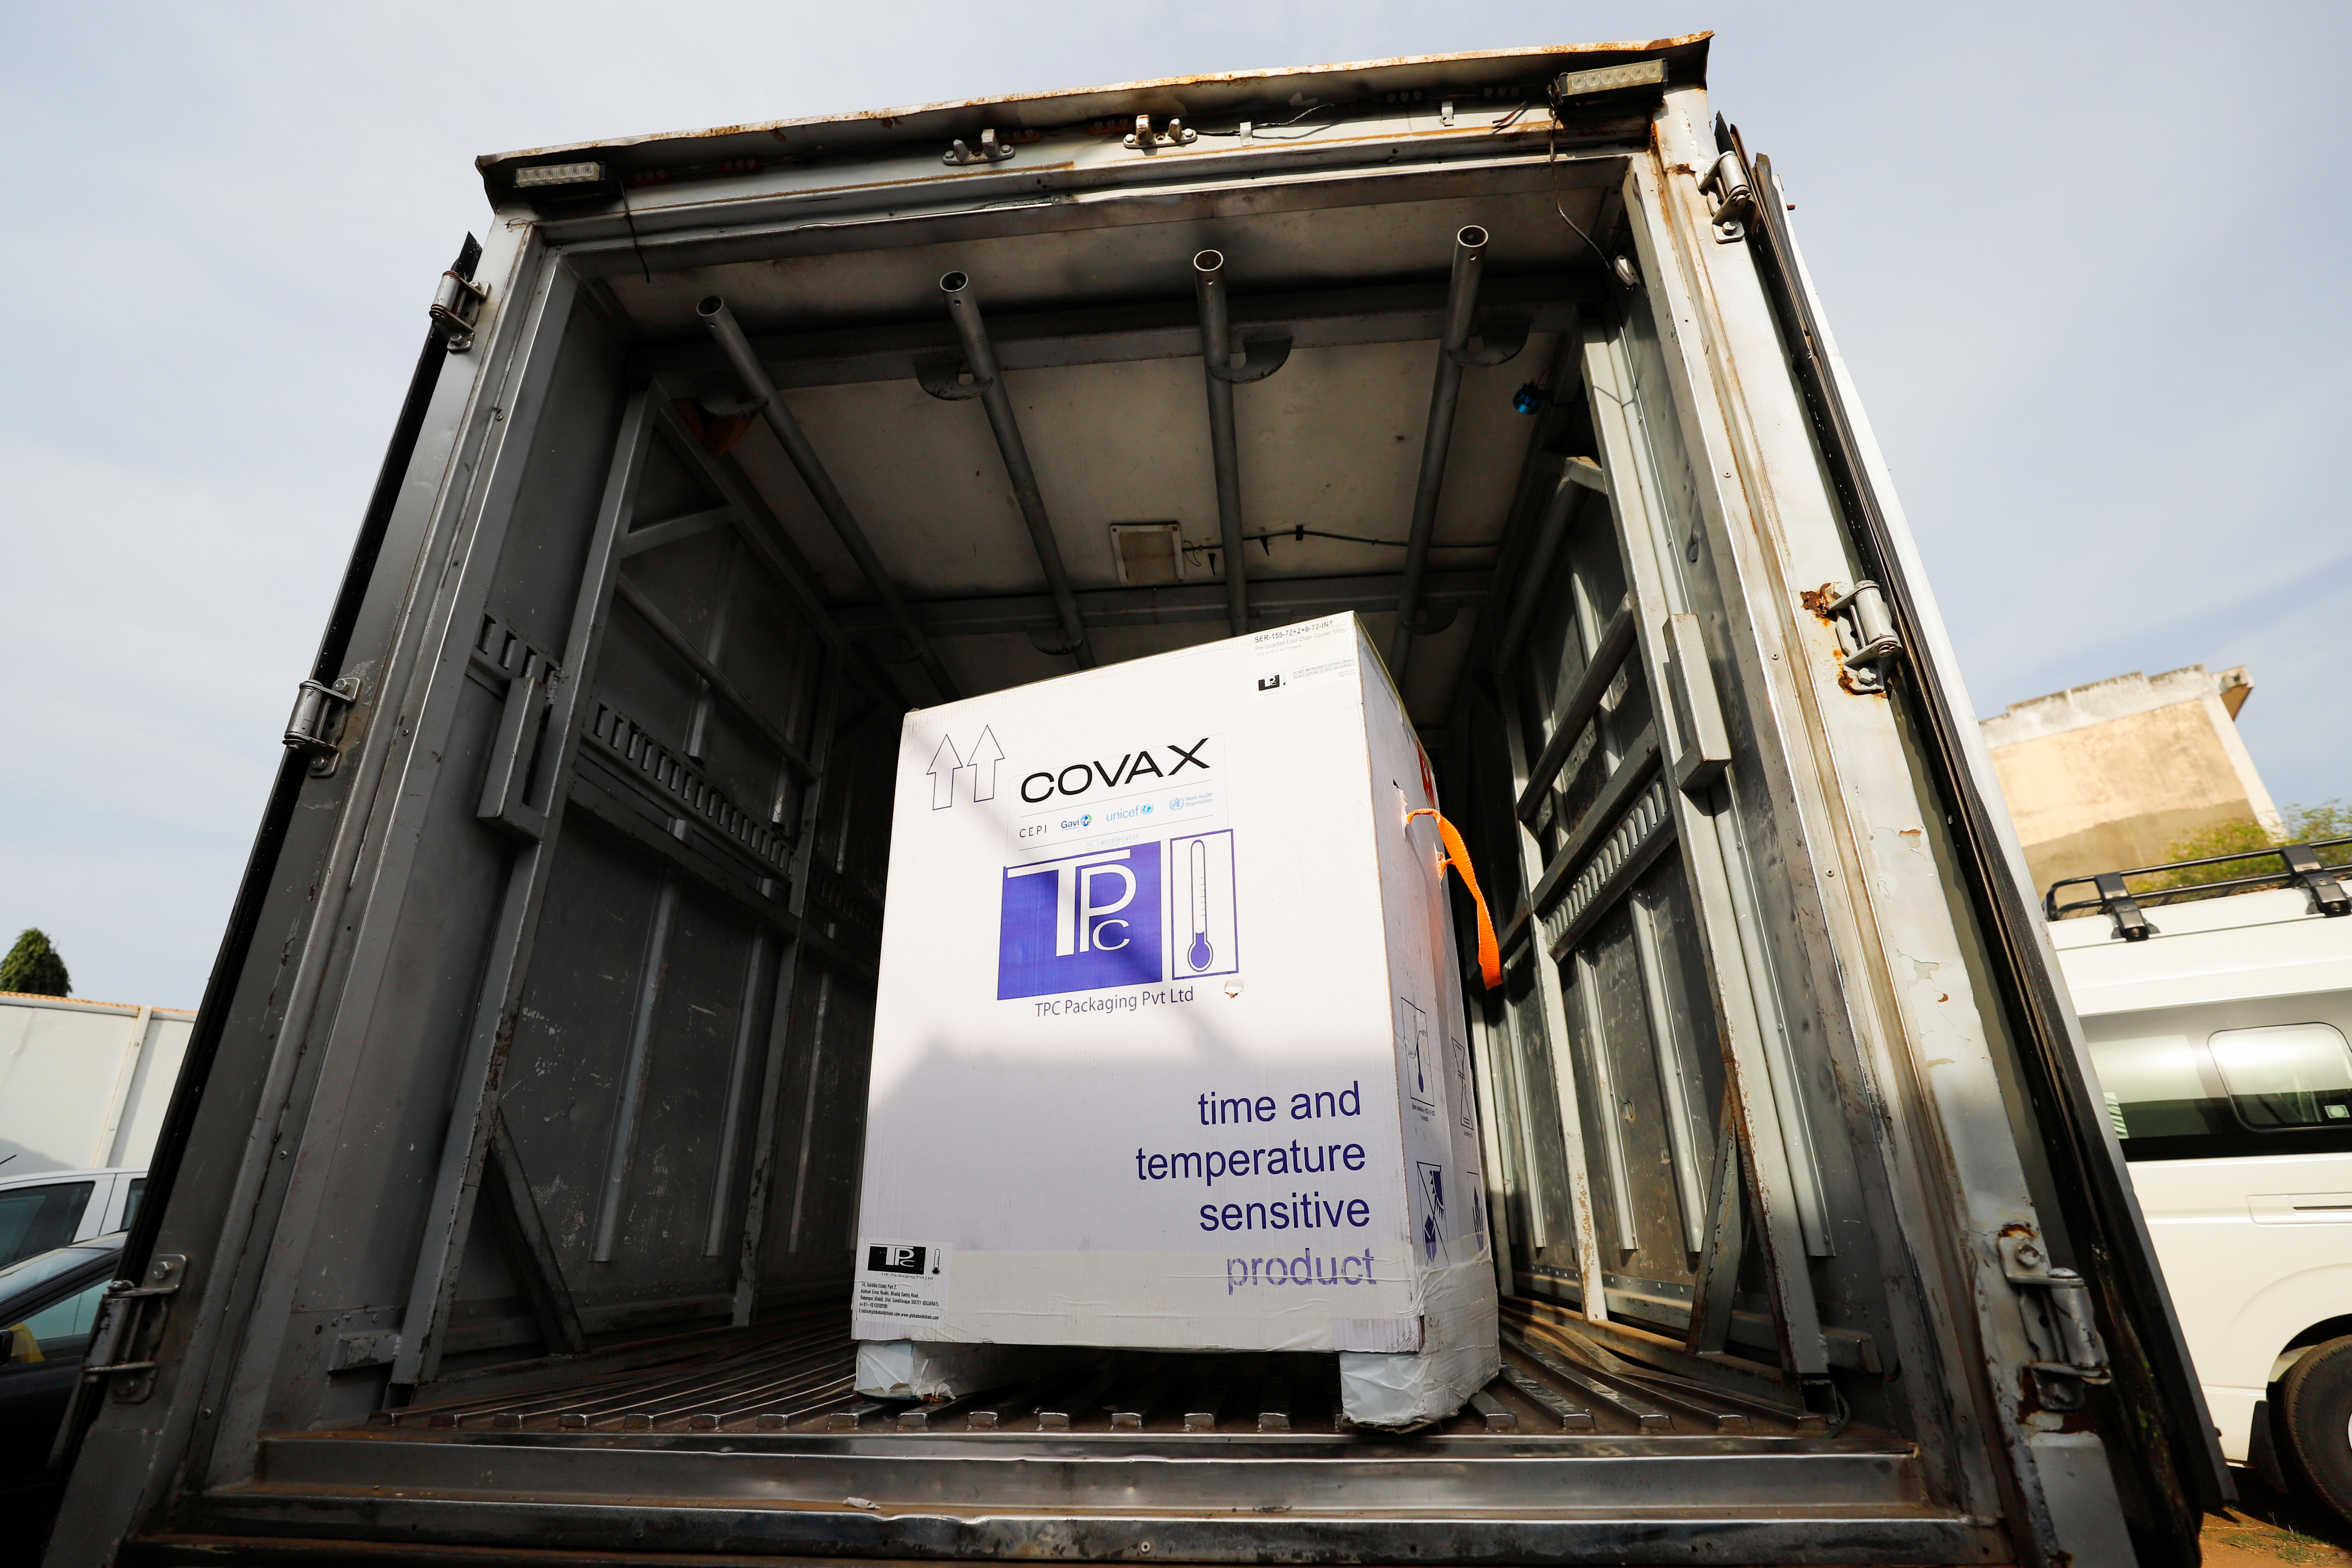 A box of Oxford/AstraZeneca coronavirus disease (COVID-19) vaccines, redeployed from the Democratic Republic of Congo, is seen loaded into a refrigerated delivery truck in Accra, Ghana May 7, 2021. REUTERS/Francis Kokoroko